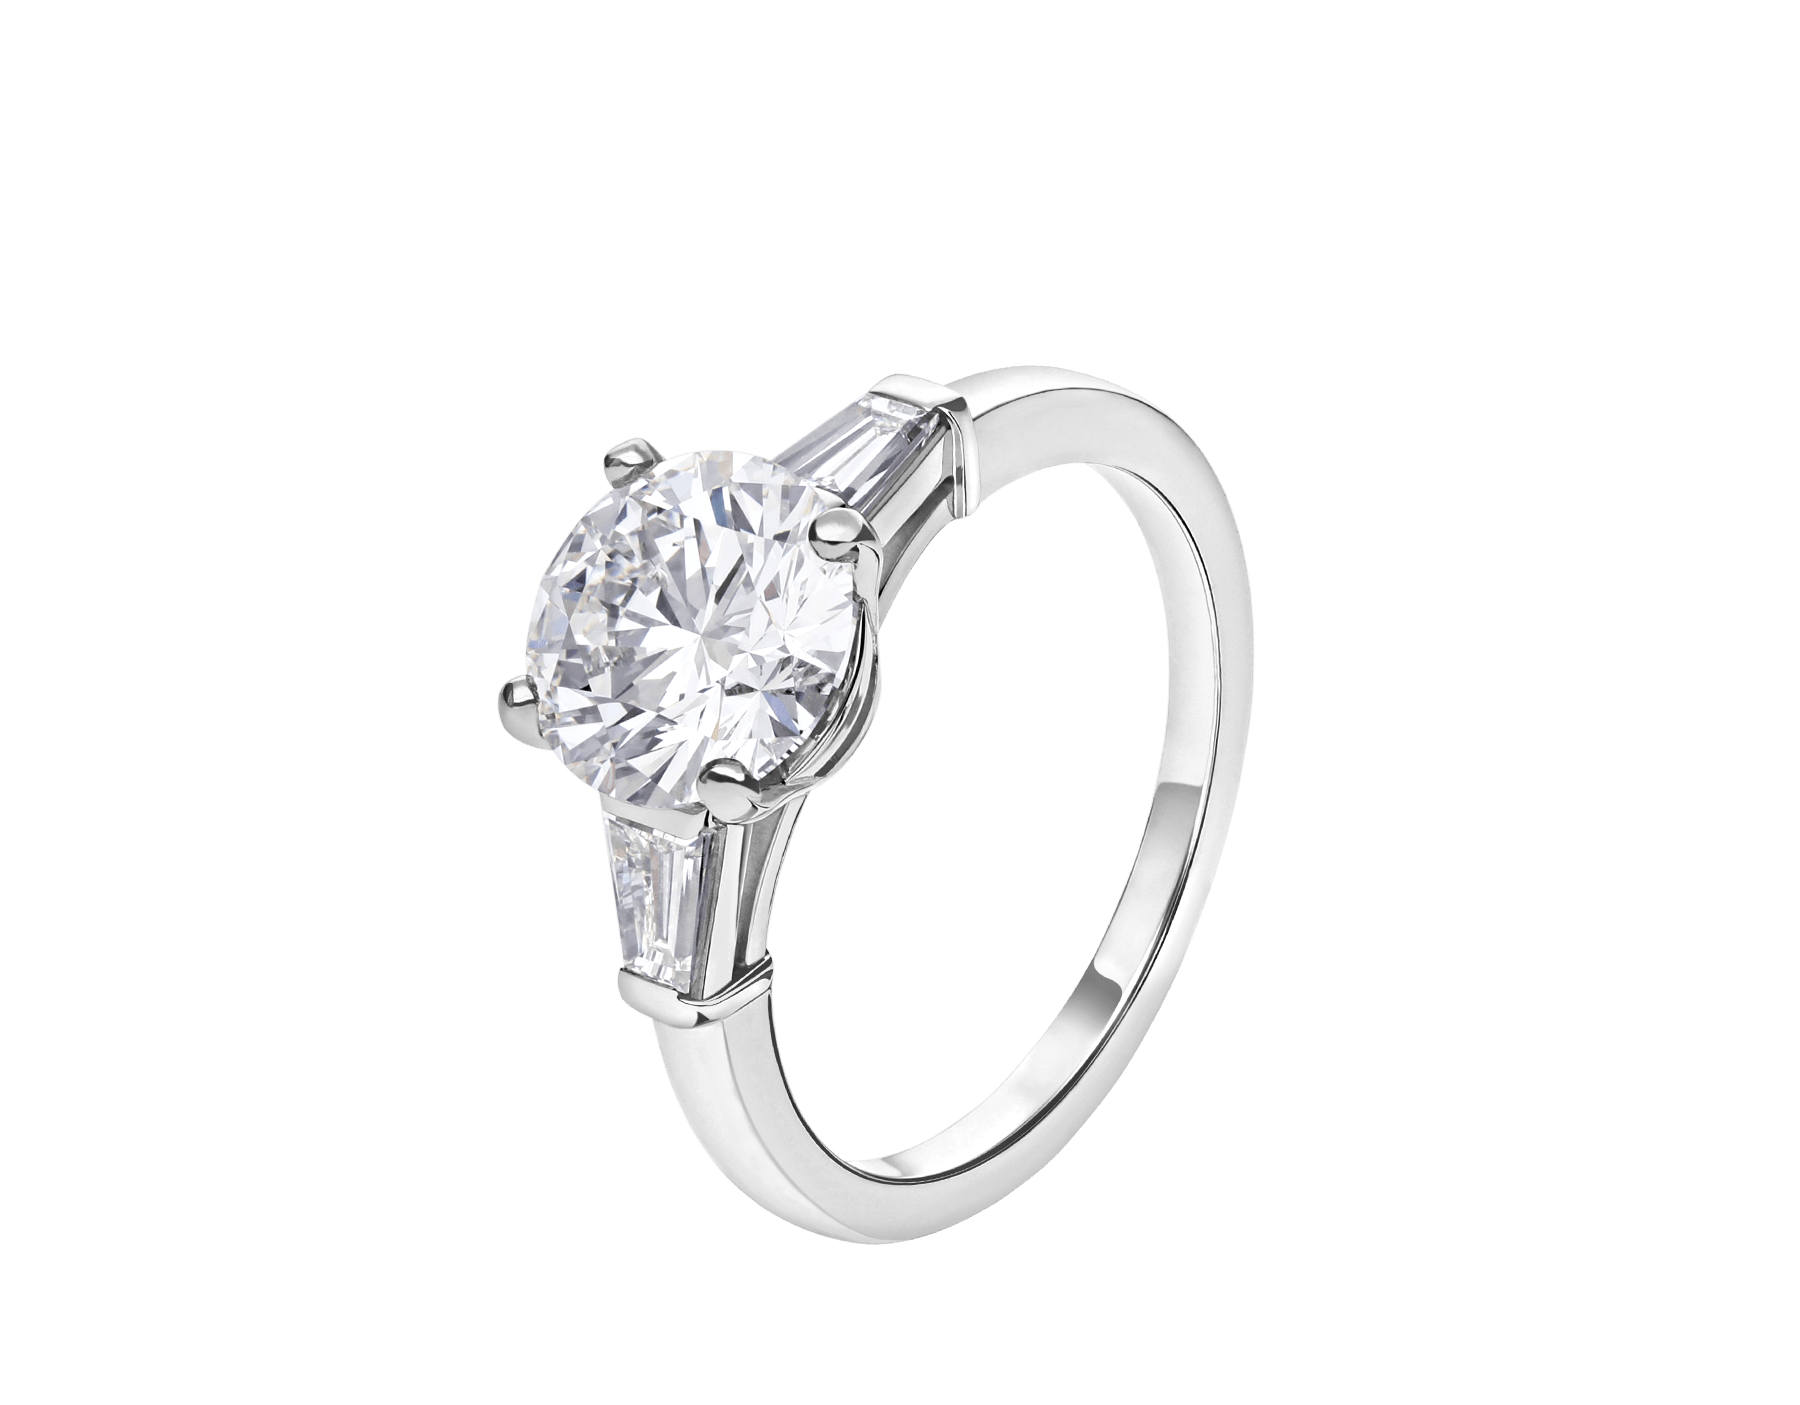 Griffe ring in platinum with round brilliant cut diamond and 2 side diamonds. Available from 1 ct. 331636 image 1